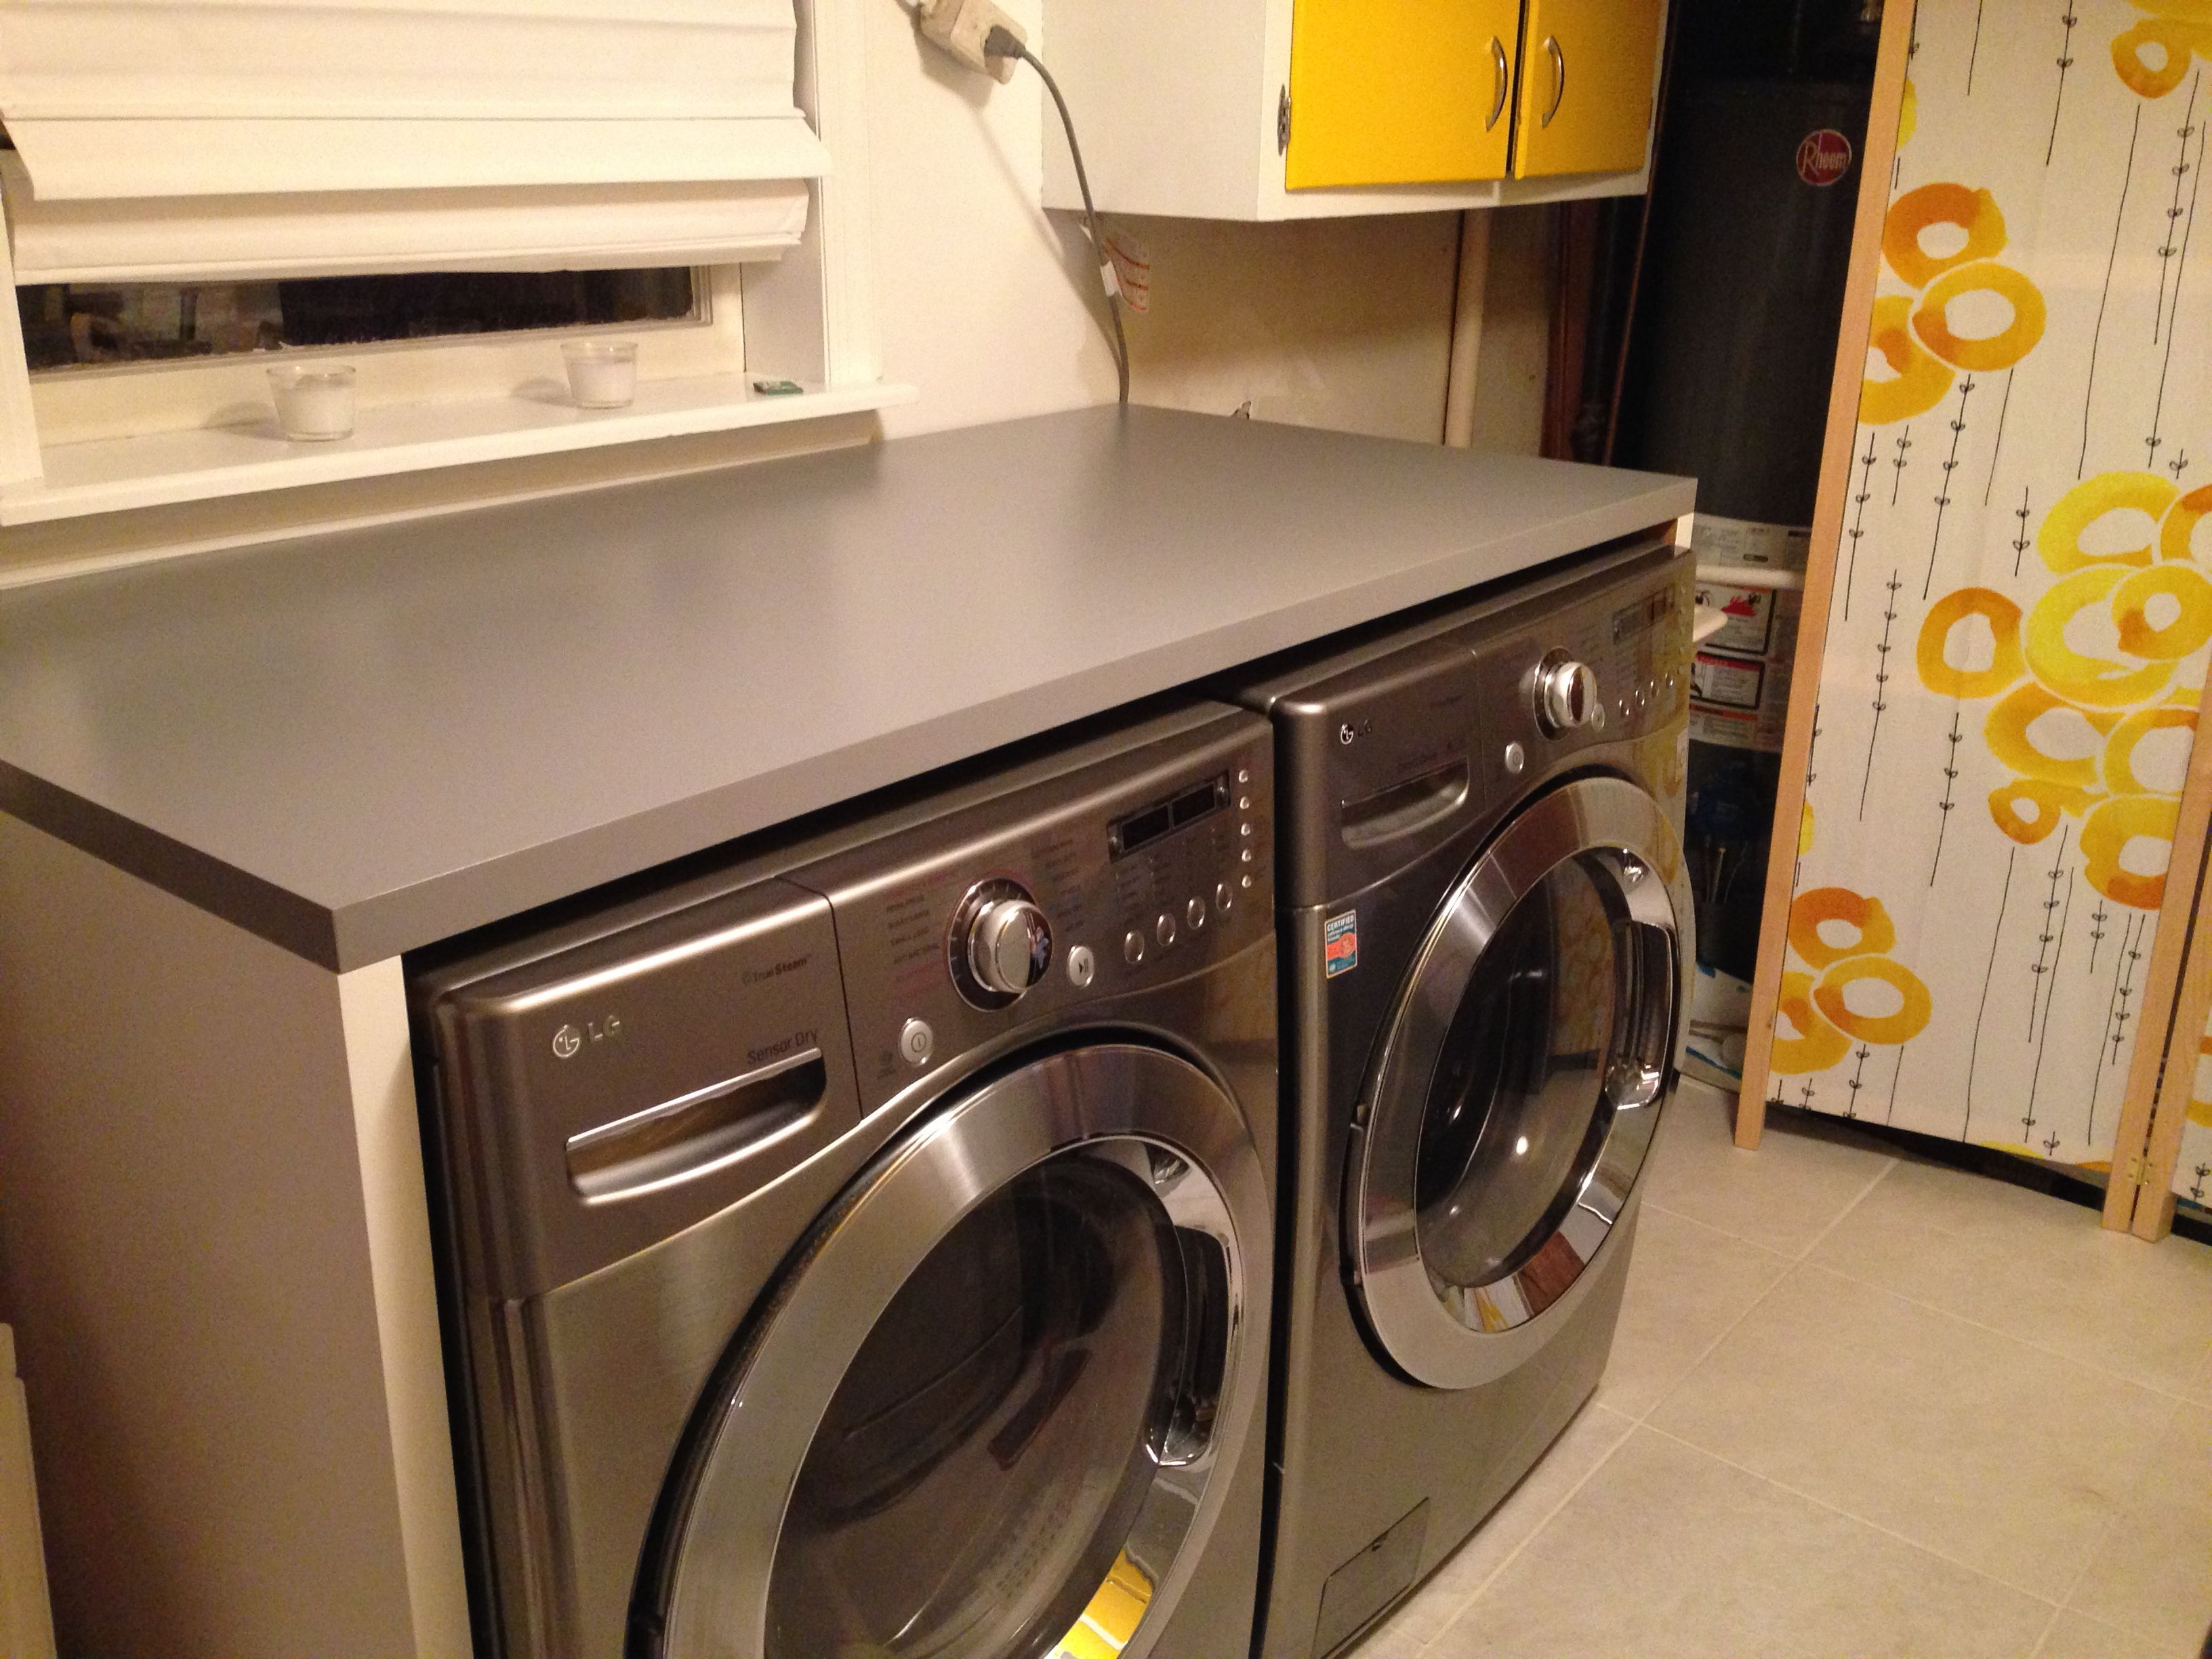 Ikea Linnmon Tabletops To Build Counter Around Washer And Dryer. Genius!